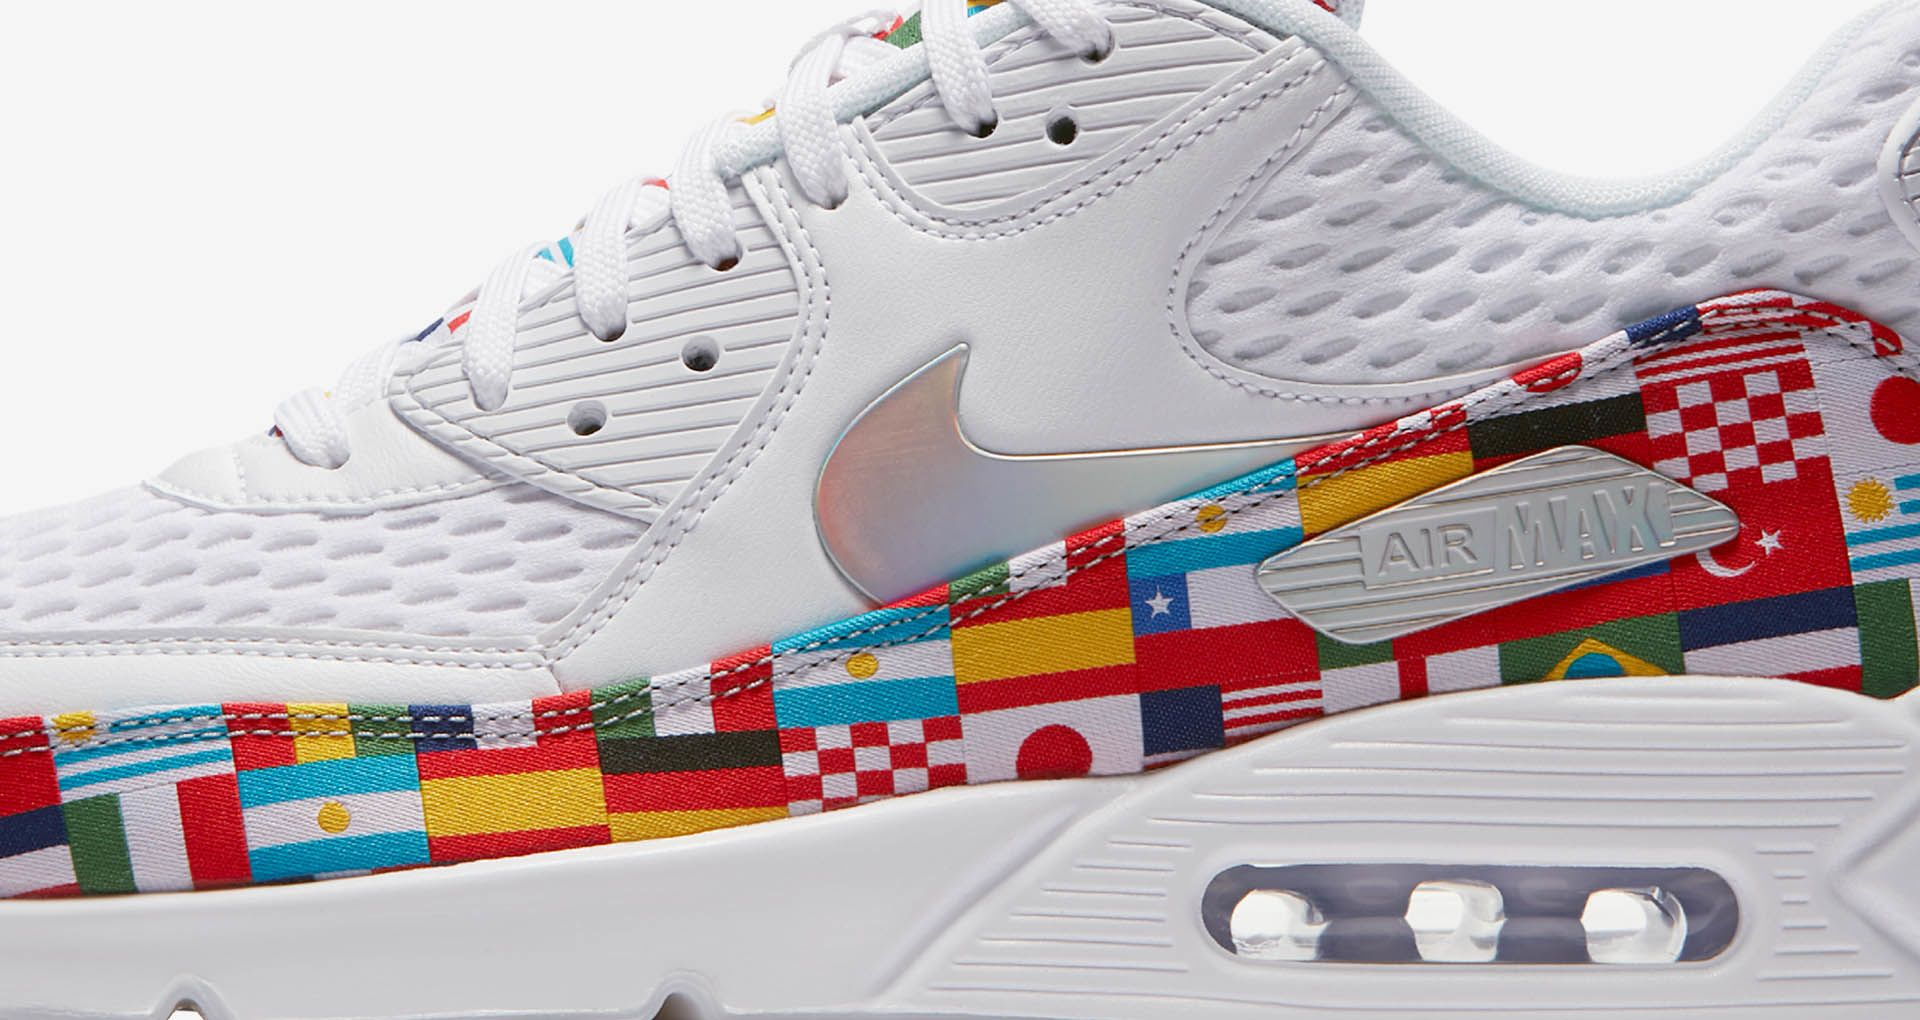 Nike Air Max 90 'White & Multicolor' Release Date. Nike SNKRS